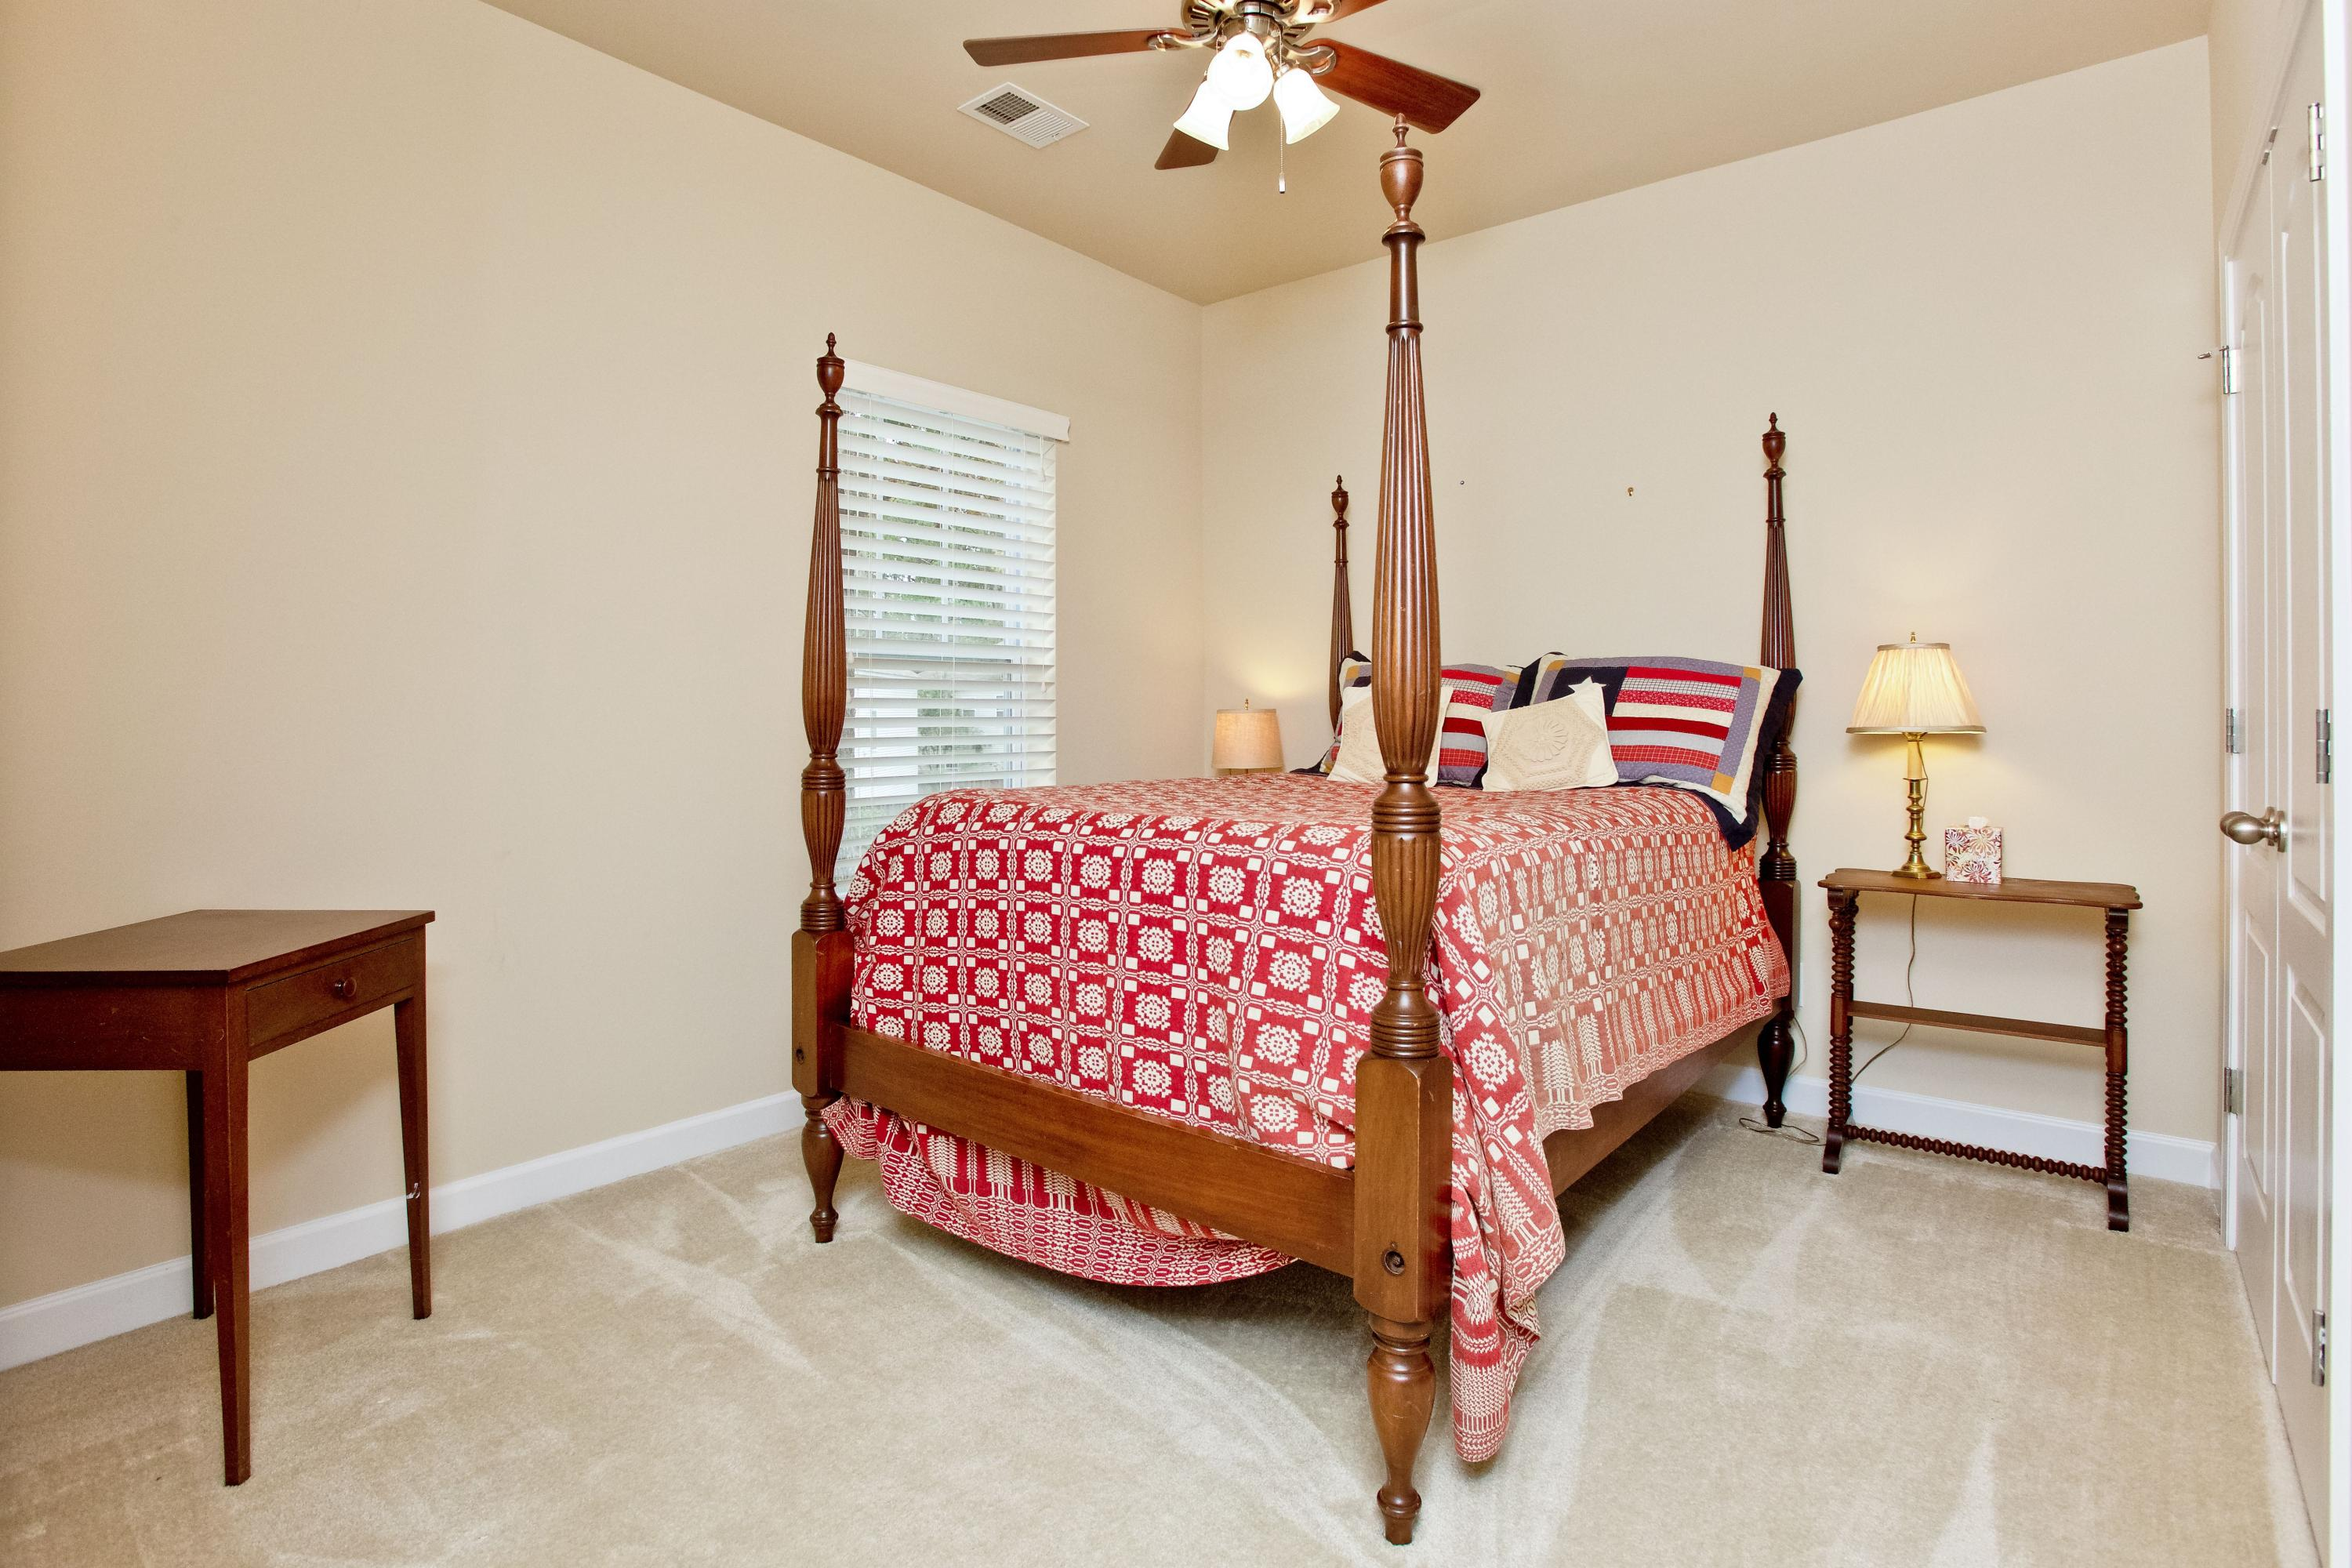 Appian Way Homes For Sale - 8473 Athens, North Charleston, SC - 17